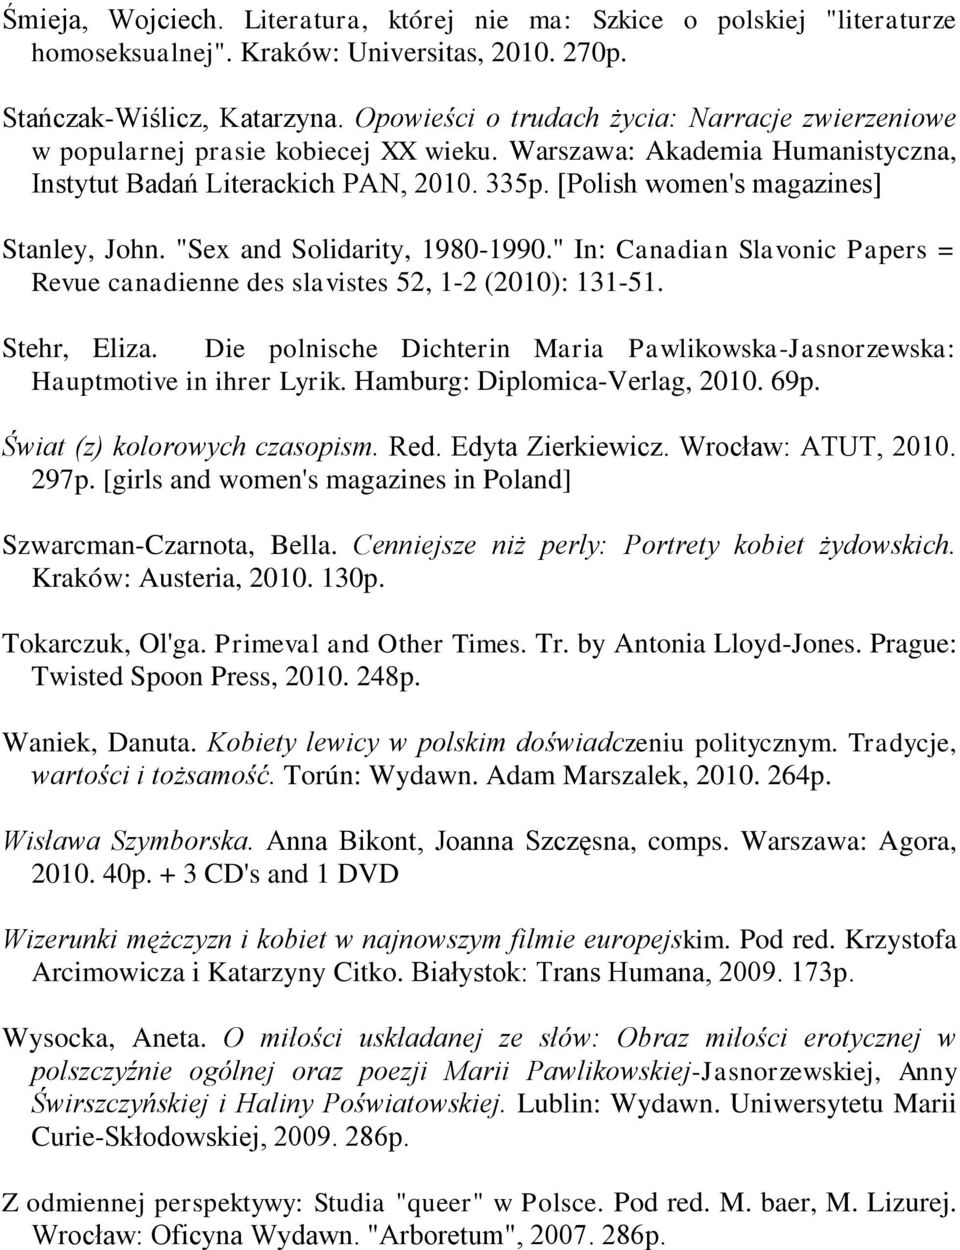 "[Polish women's magazines] Stanley, John. ""Sex and Solidarity, 1980-1990."" In: Canadian Slavonic Papers = Revue canadienne des slavistes 52, 1-2 (2010): 131-51. Stehr, Eliza."